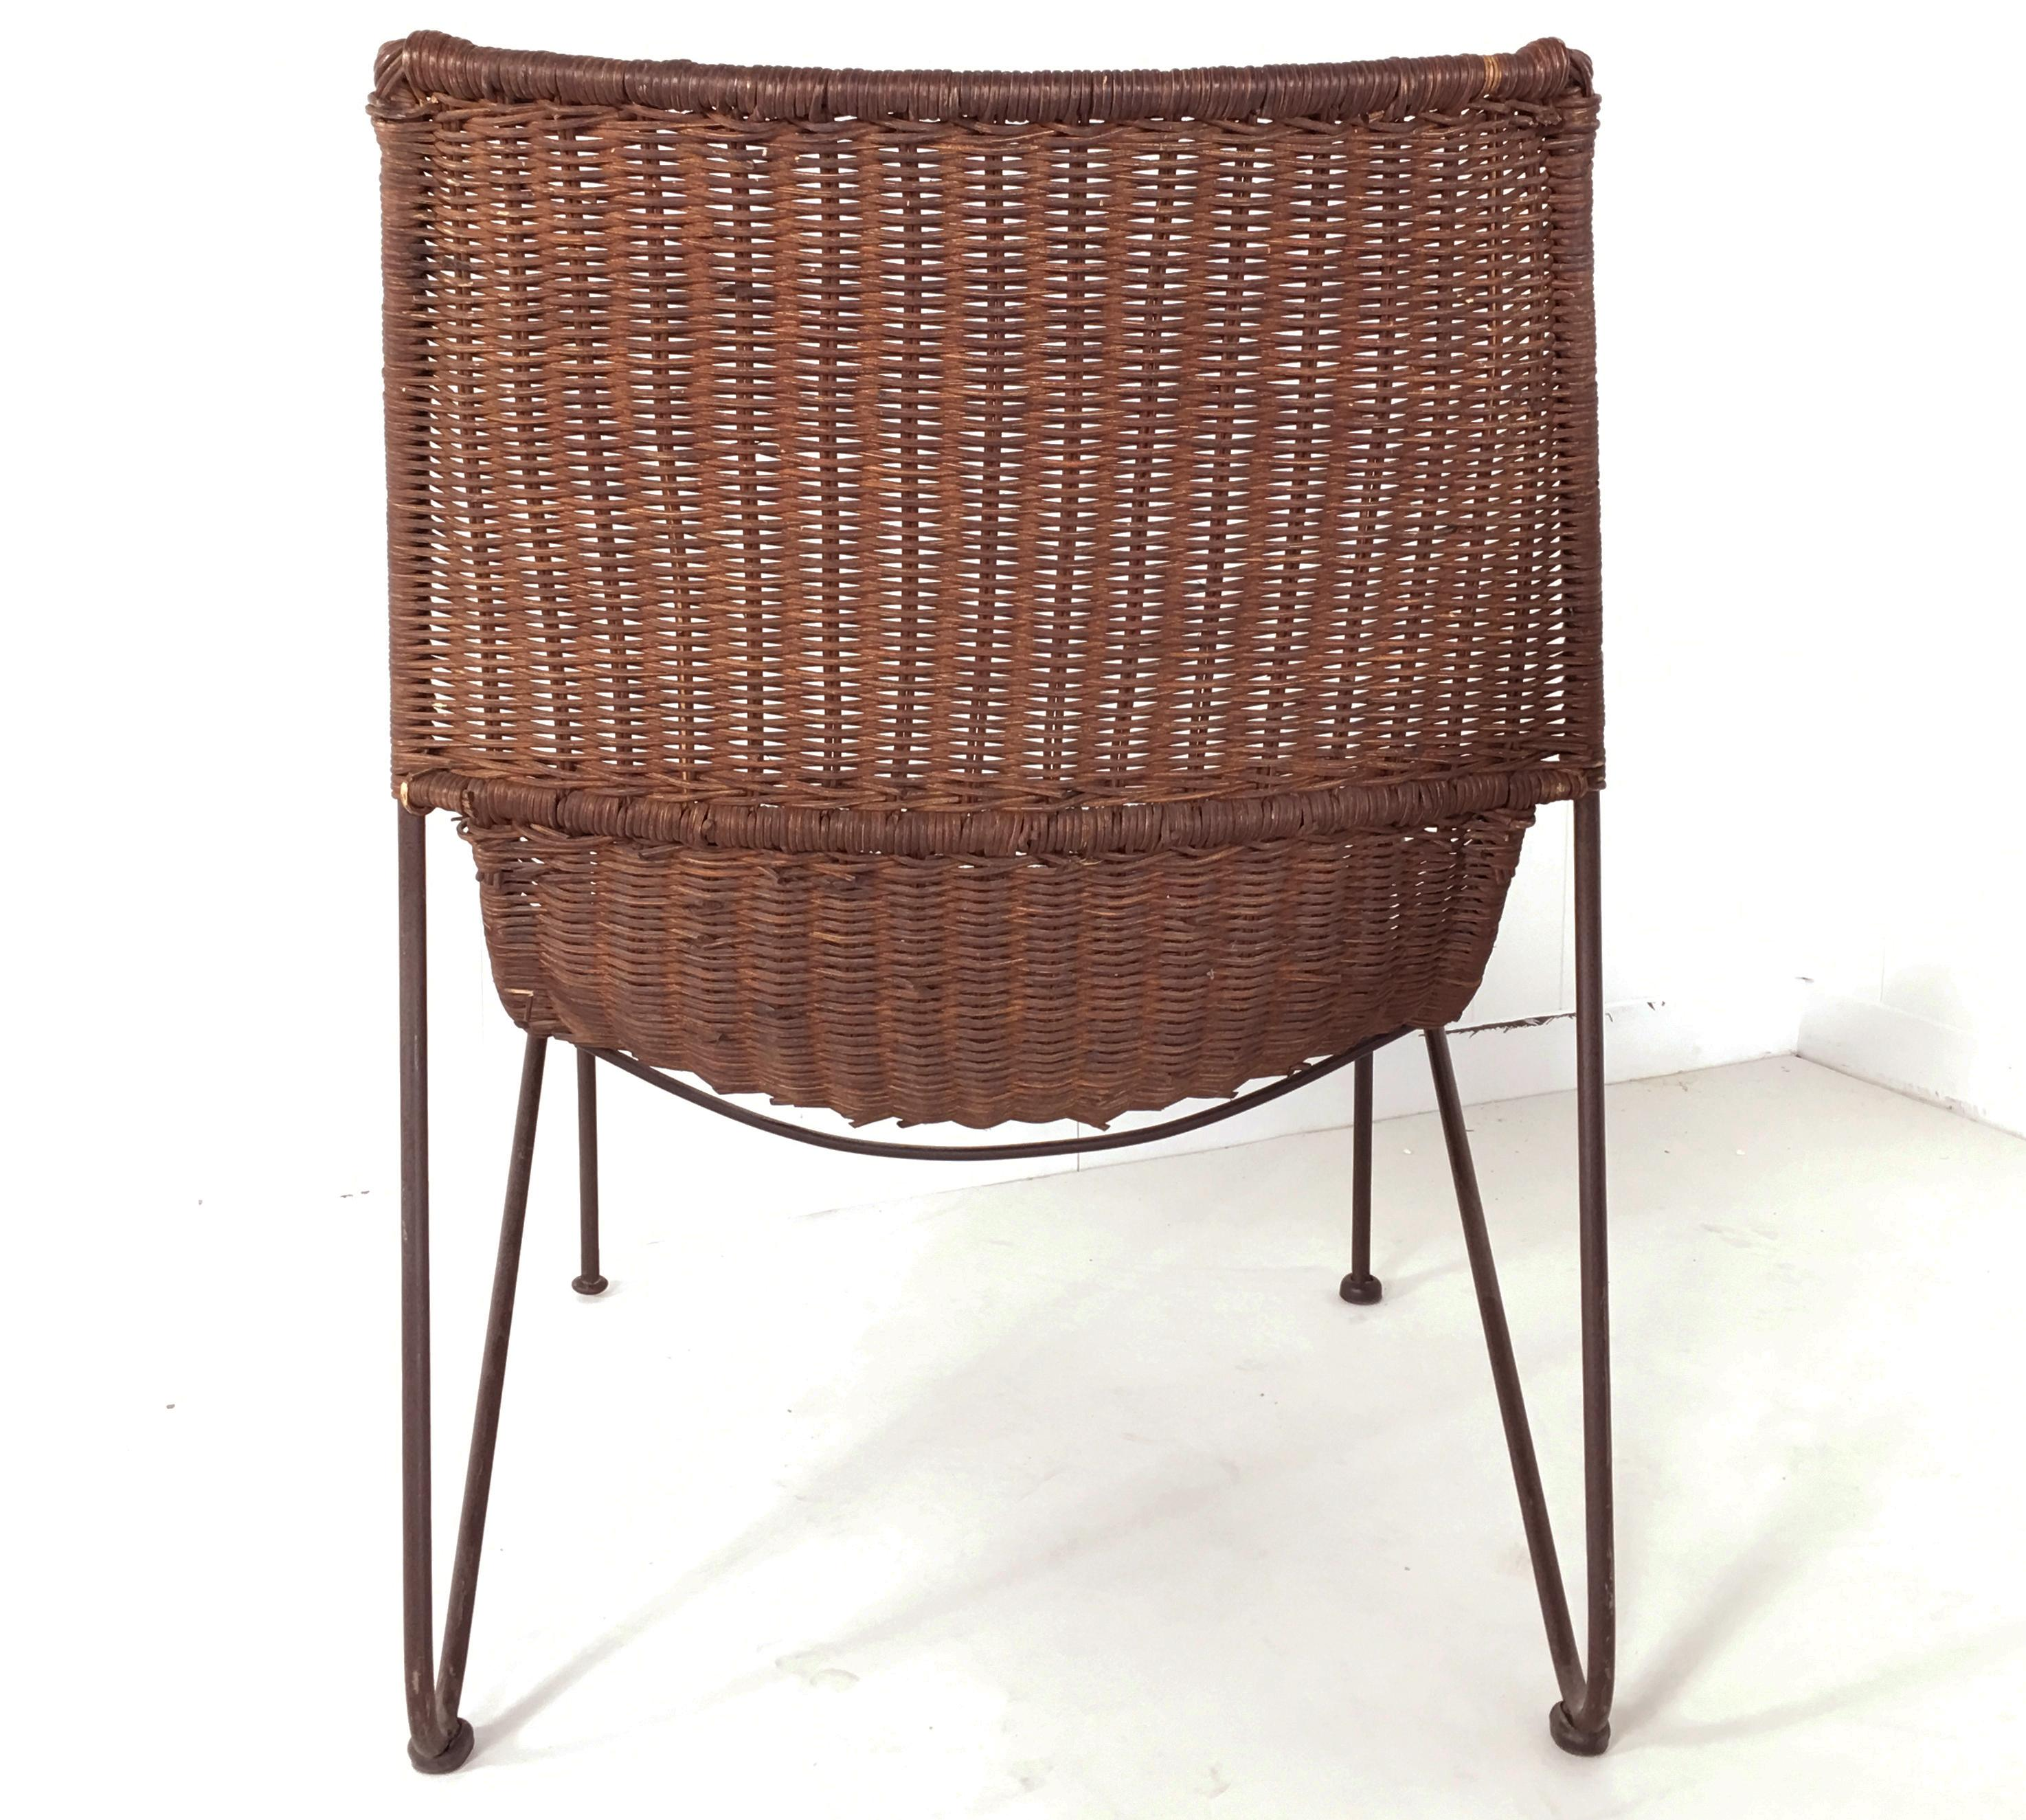 Incredible Pair Of Scoop Chairs In Wicker Rattan At 1Stdibs Uwap Interior Chair Design Uwaporg